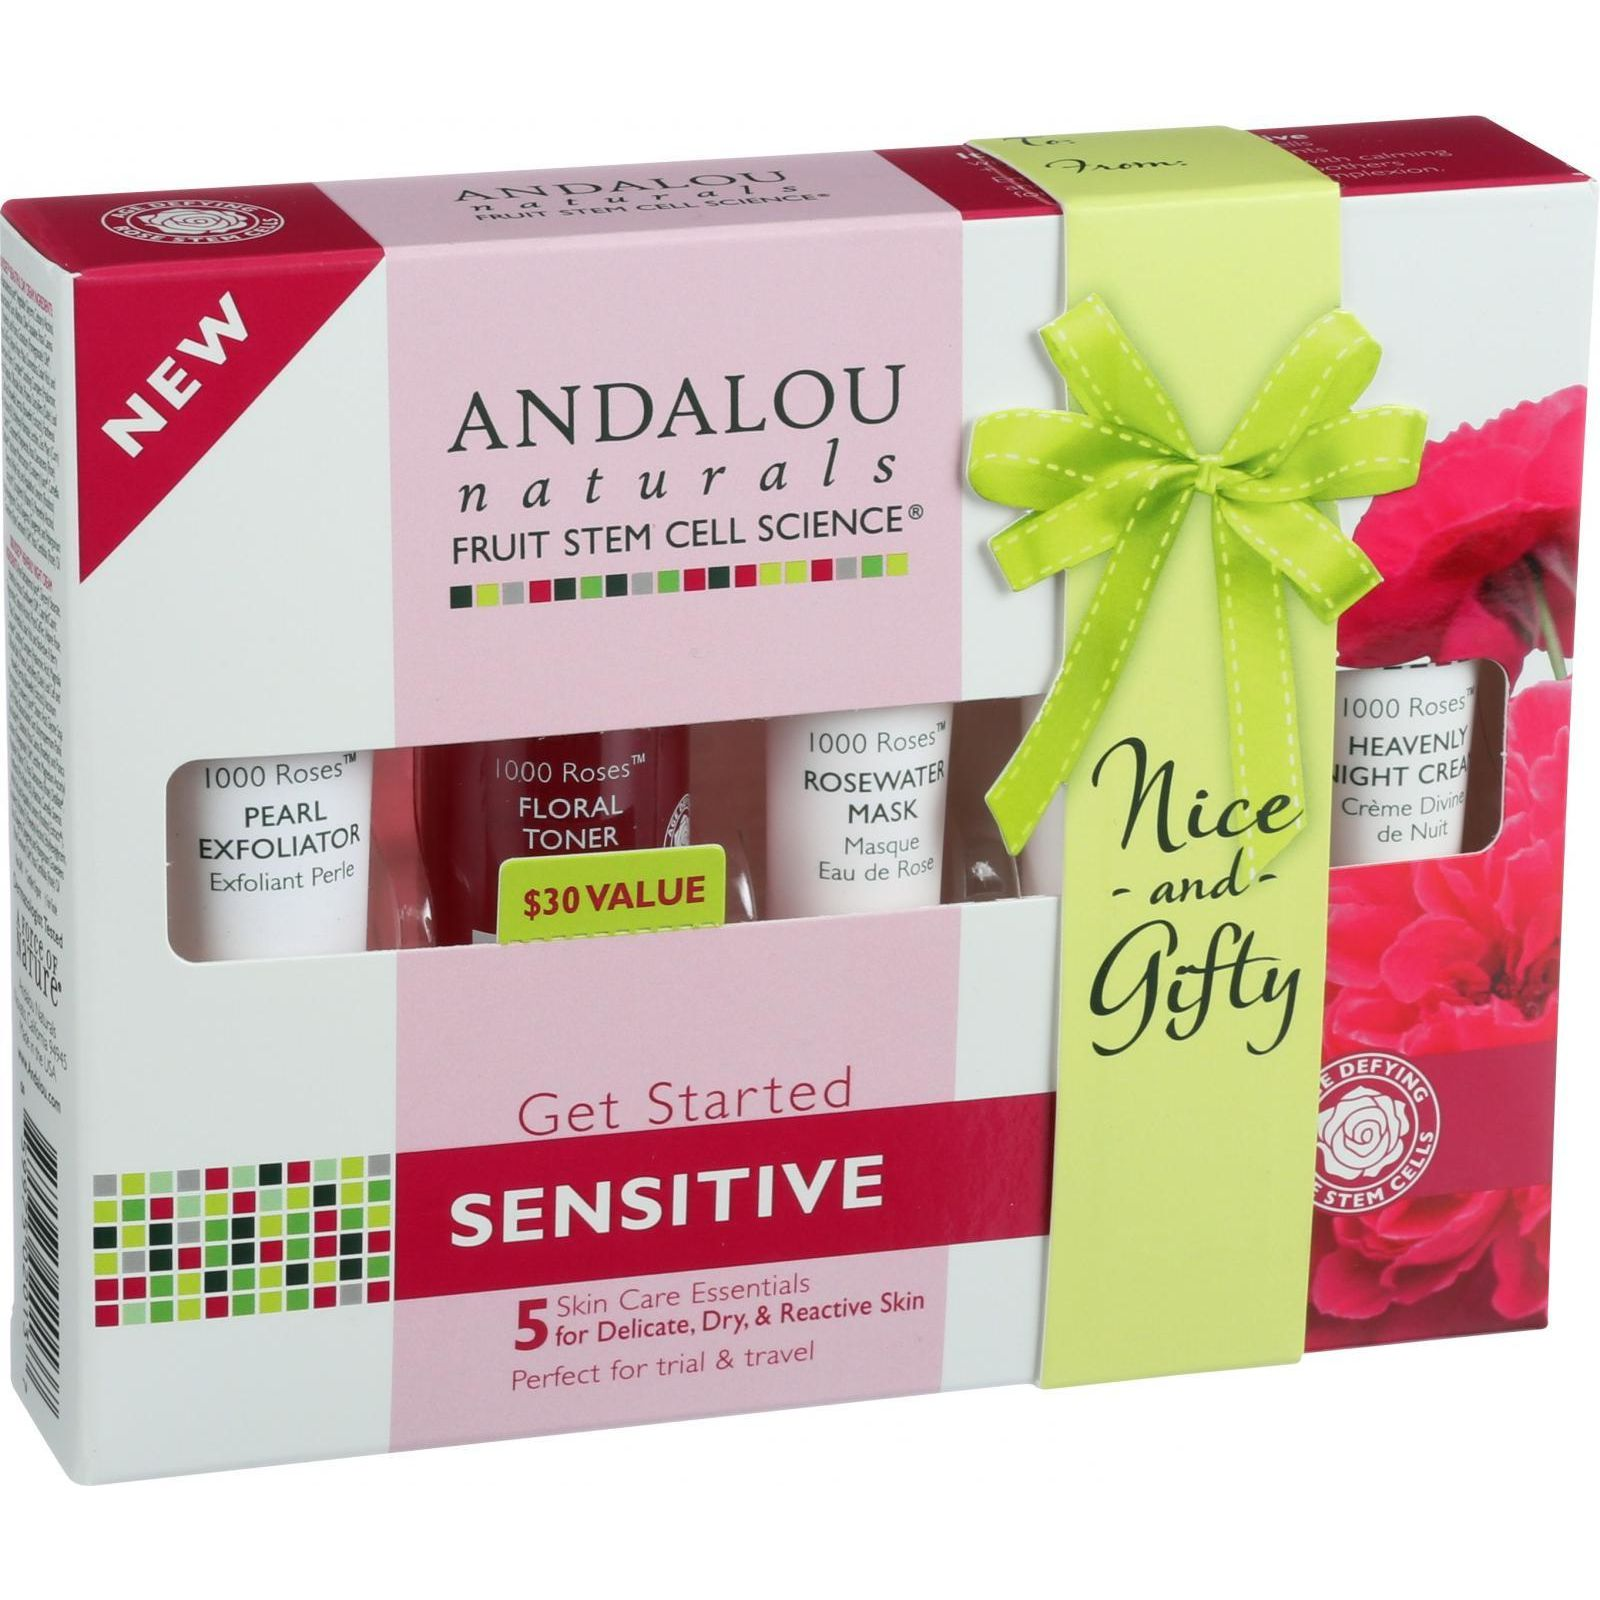 Andalou Naturals Fruit Stem Cell Science  Roses